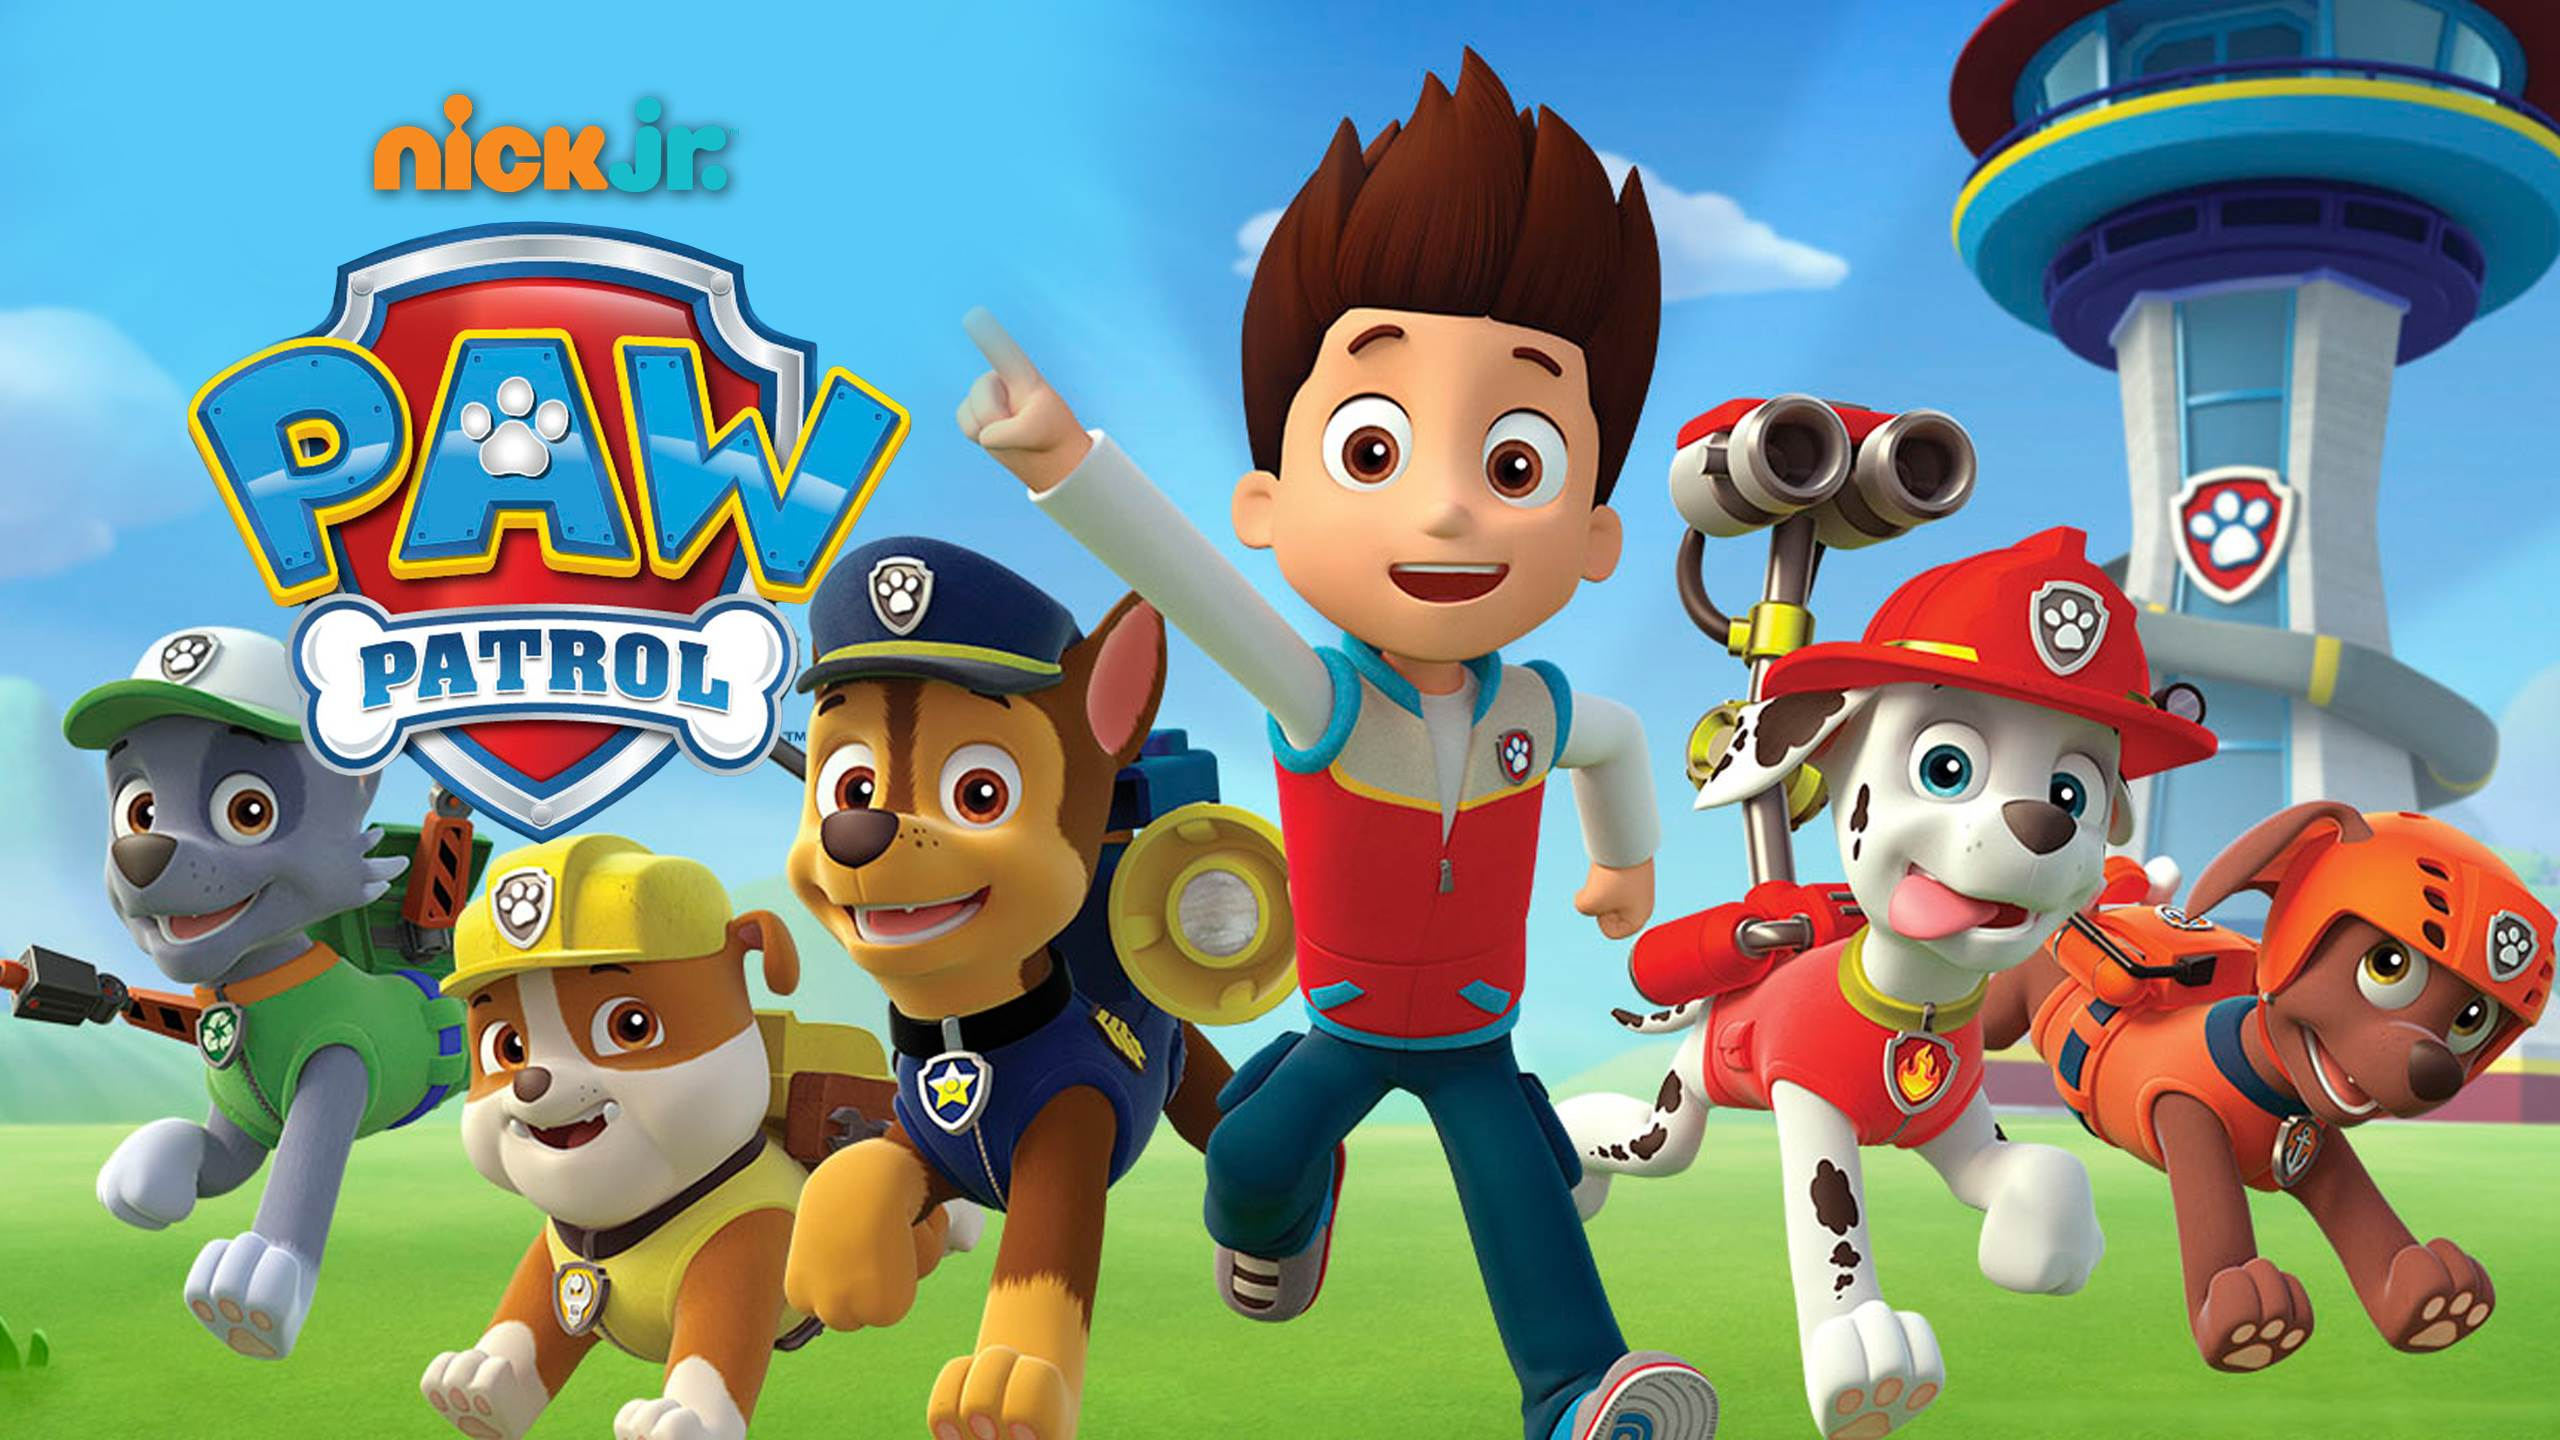 Outstanding Marshall And Chase Paw Patrol Wallpaper te org